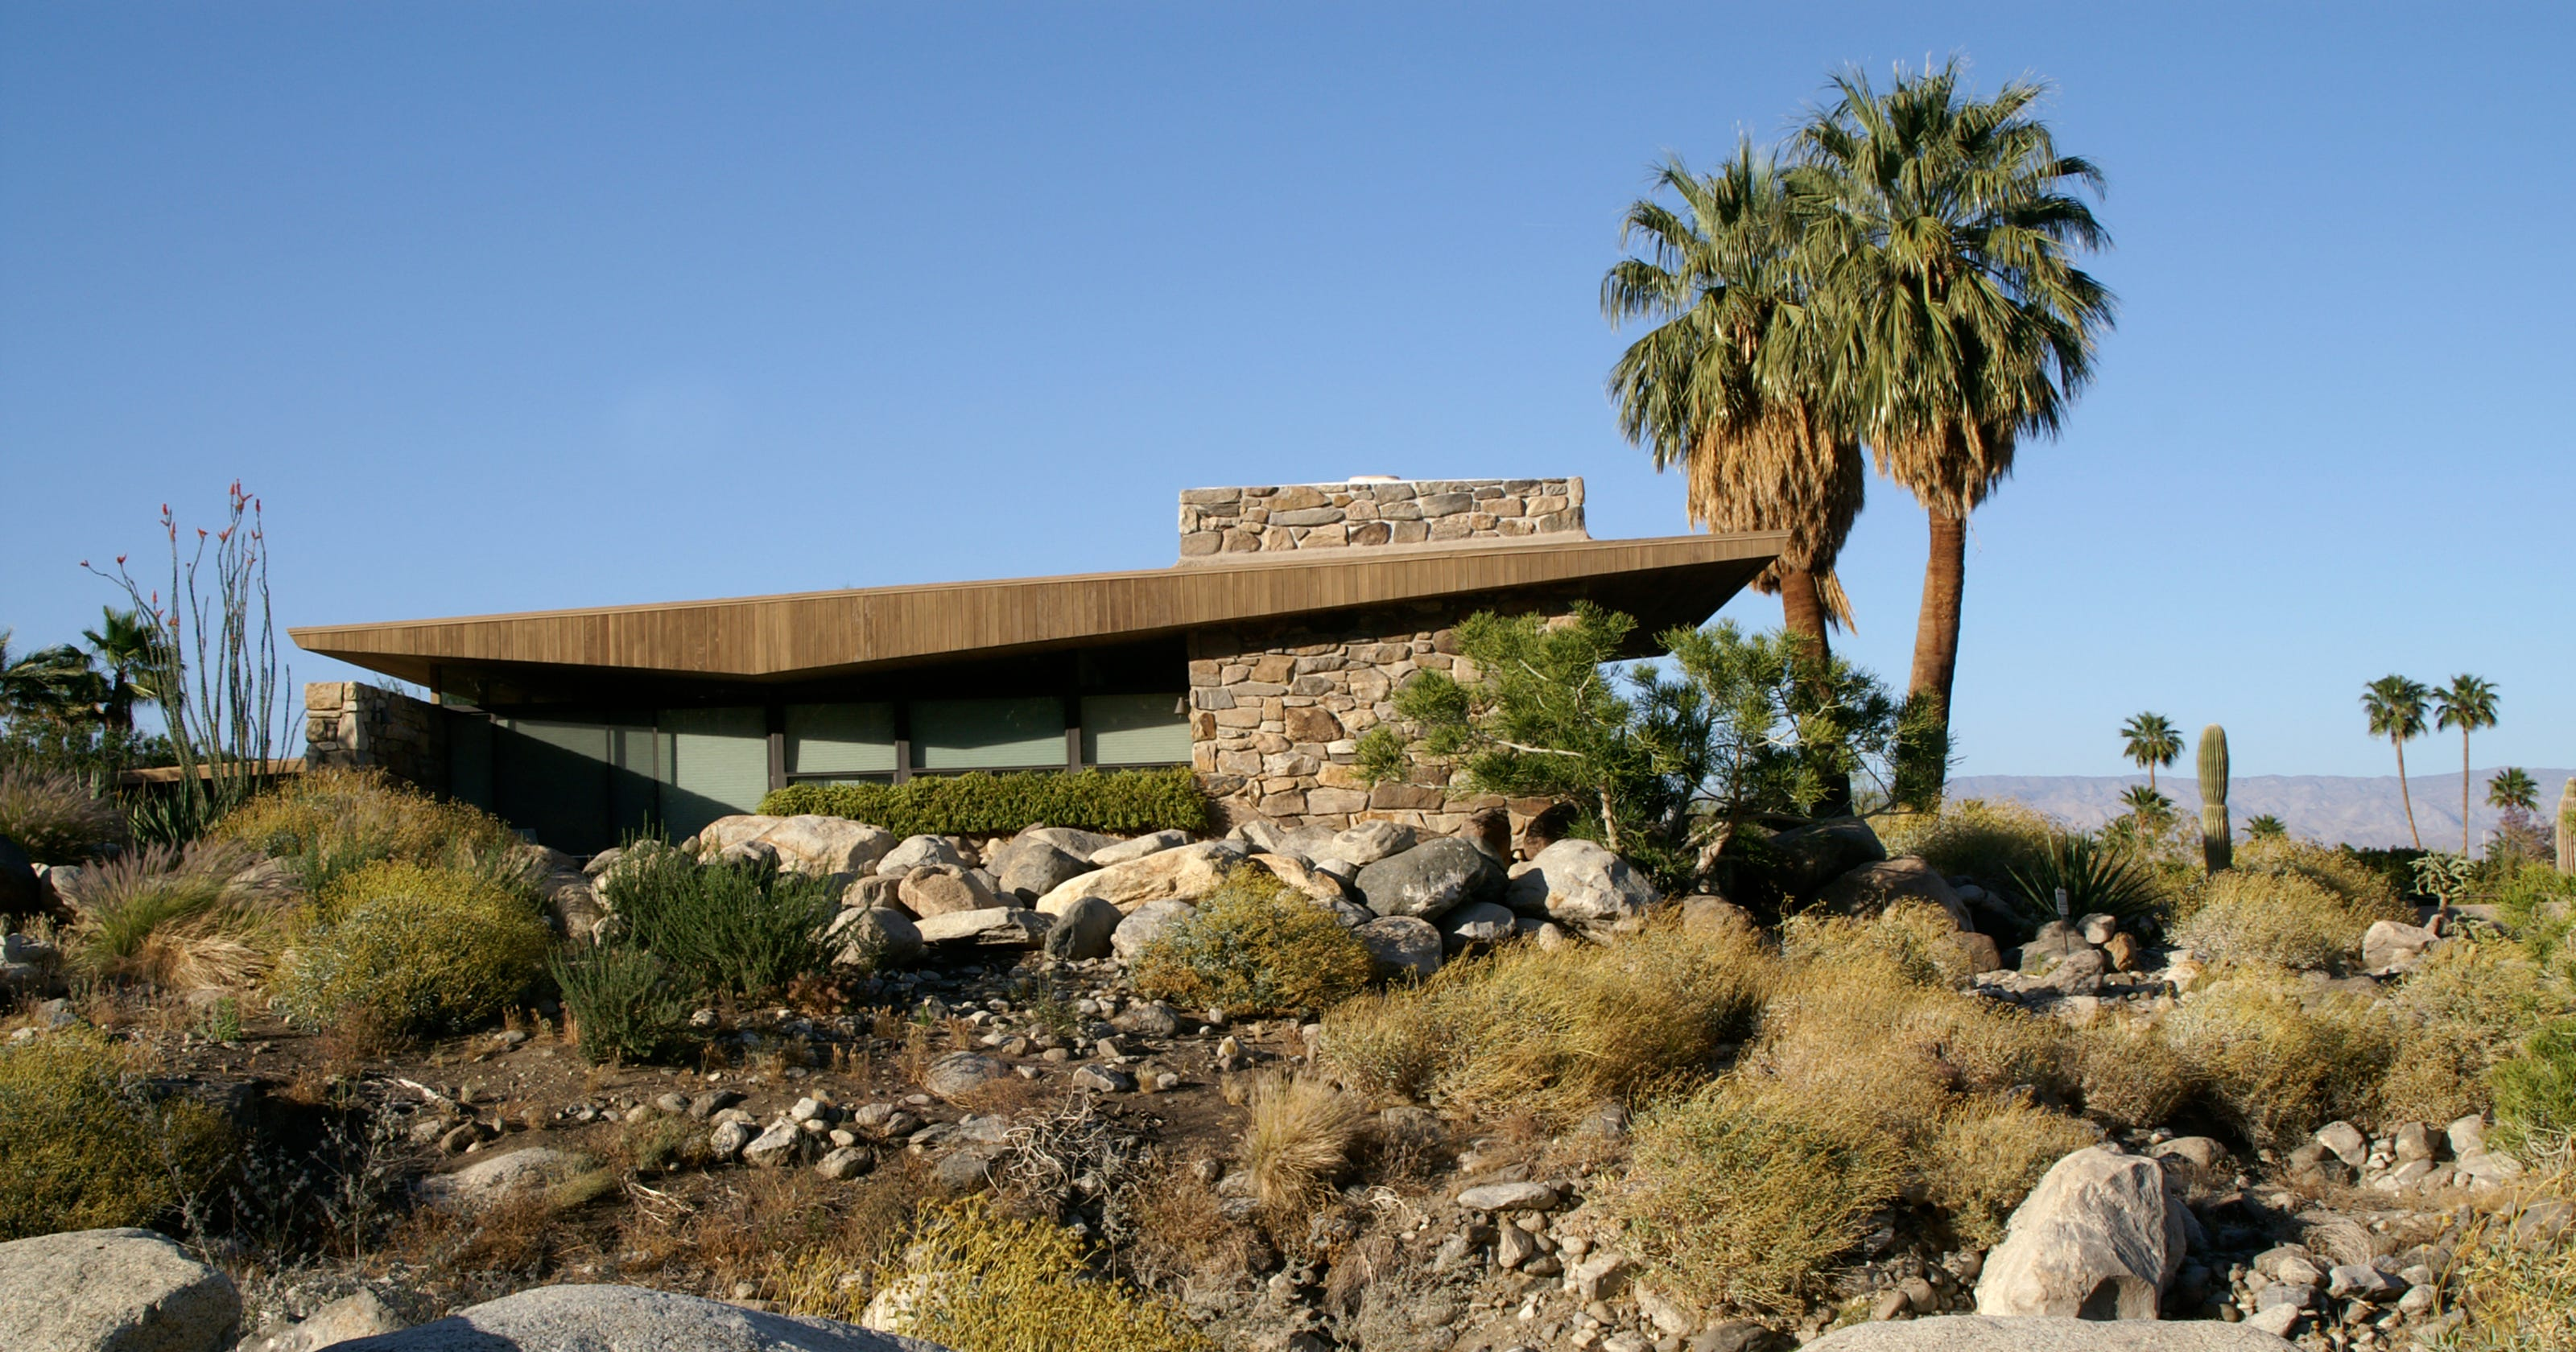 Palm Springs' Edris House for sale, asking $4.2 million on house designs hilly, house designs single, house designs flat, house designs small, house designs interior,